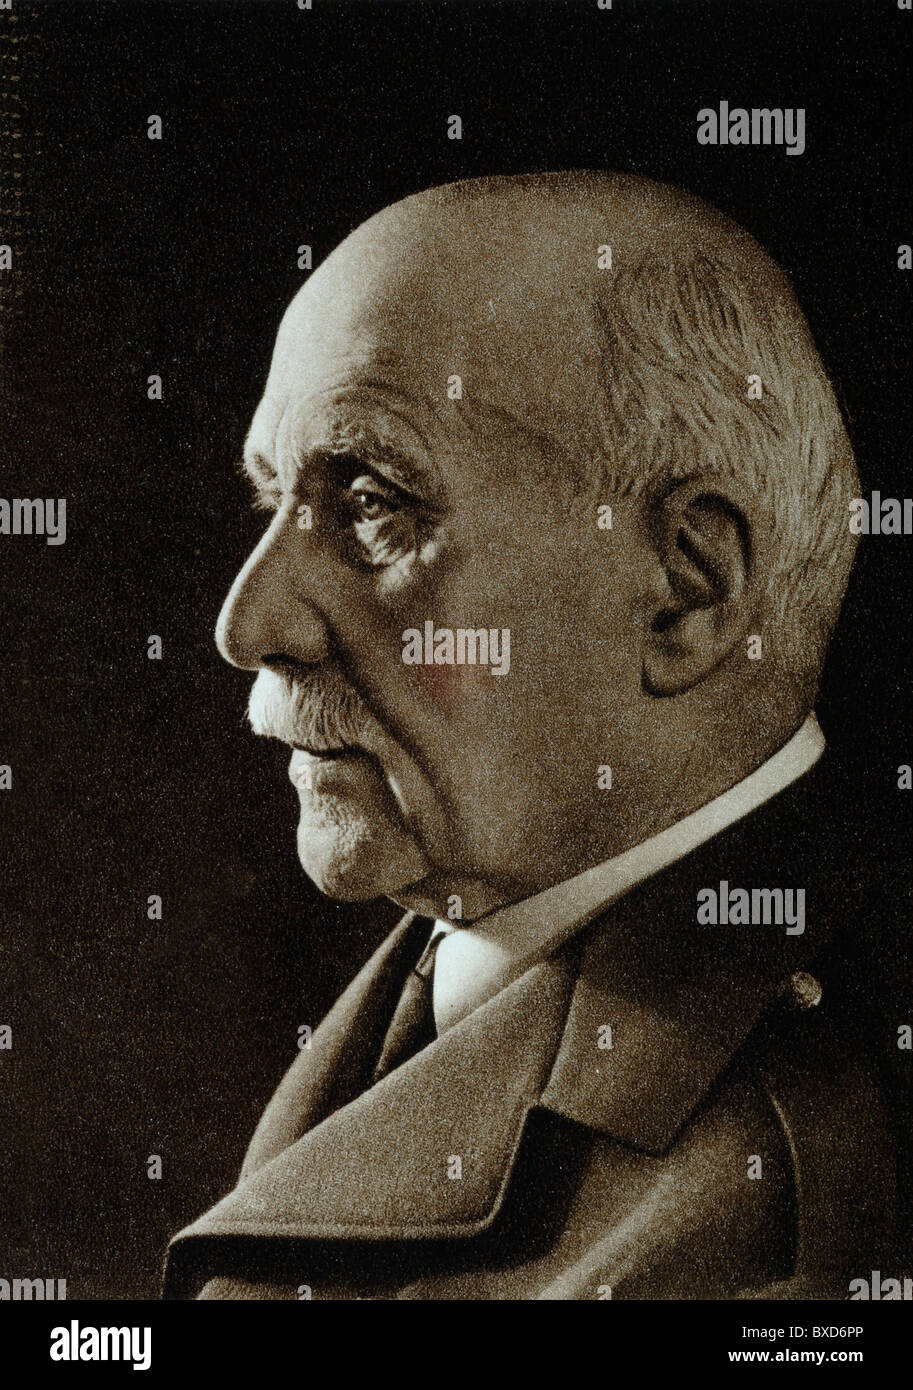 Portrait of Marshal Philippe Pétain (1856-1951) French Army Officer, Marshal of France, Chief of State of Vichy - Stock Image